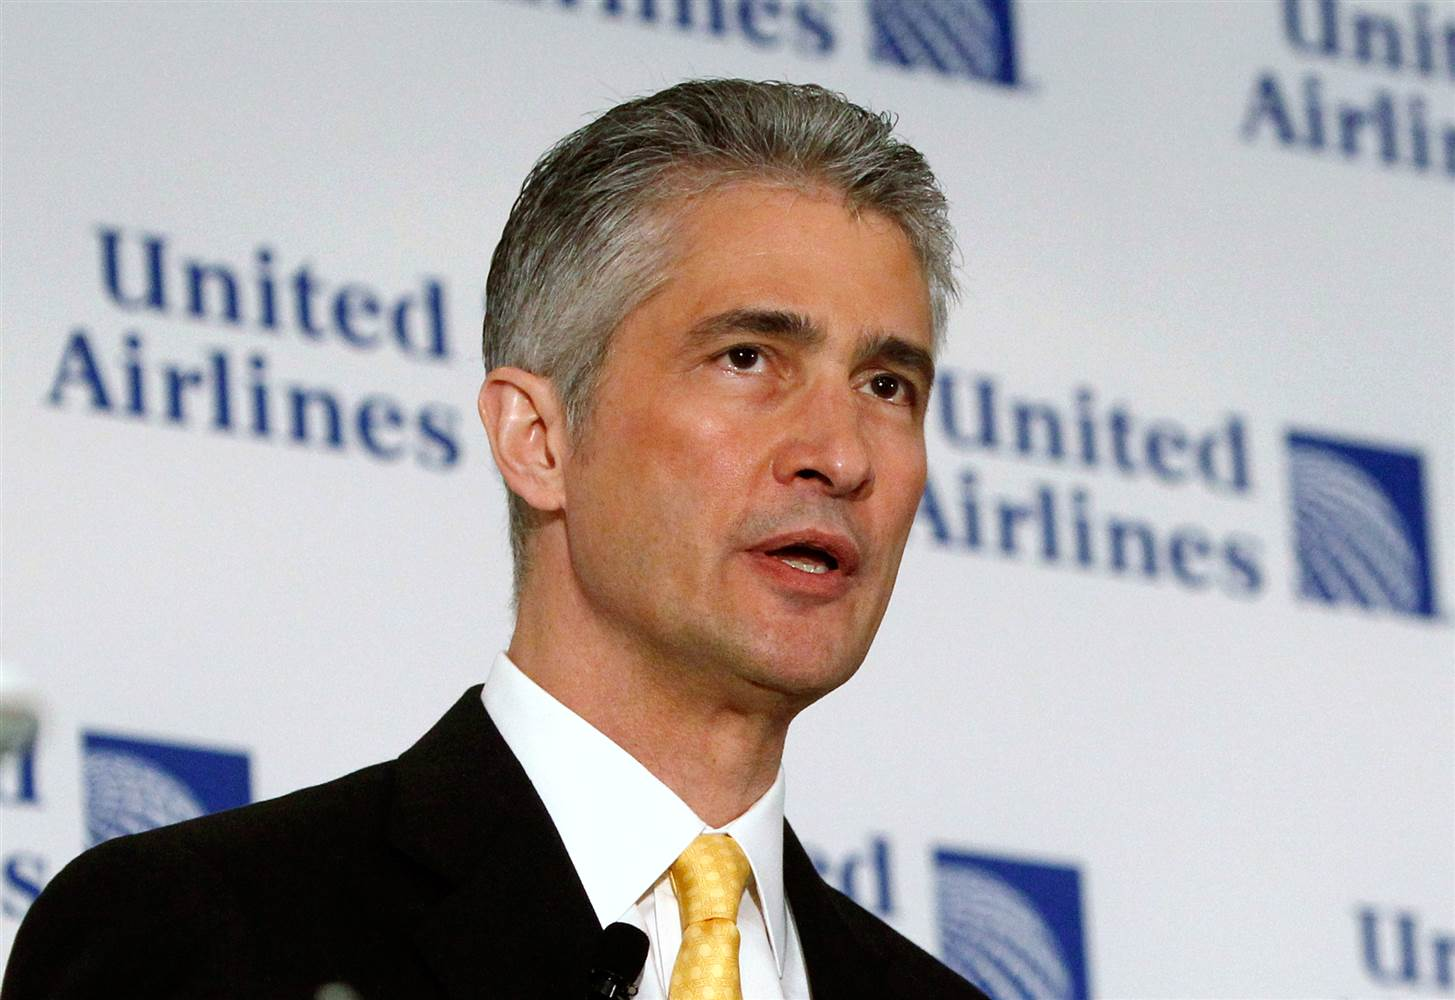 United_Airlines_CEO_Jeff Smisek_resign_2015